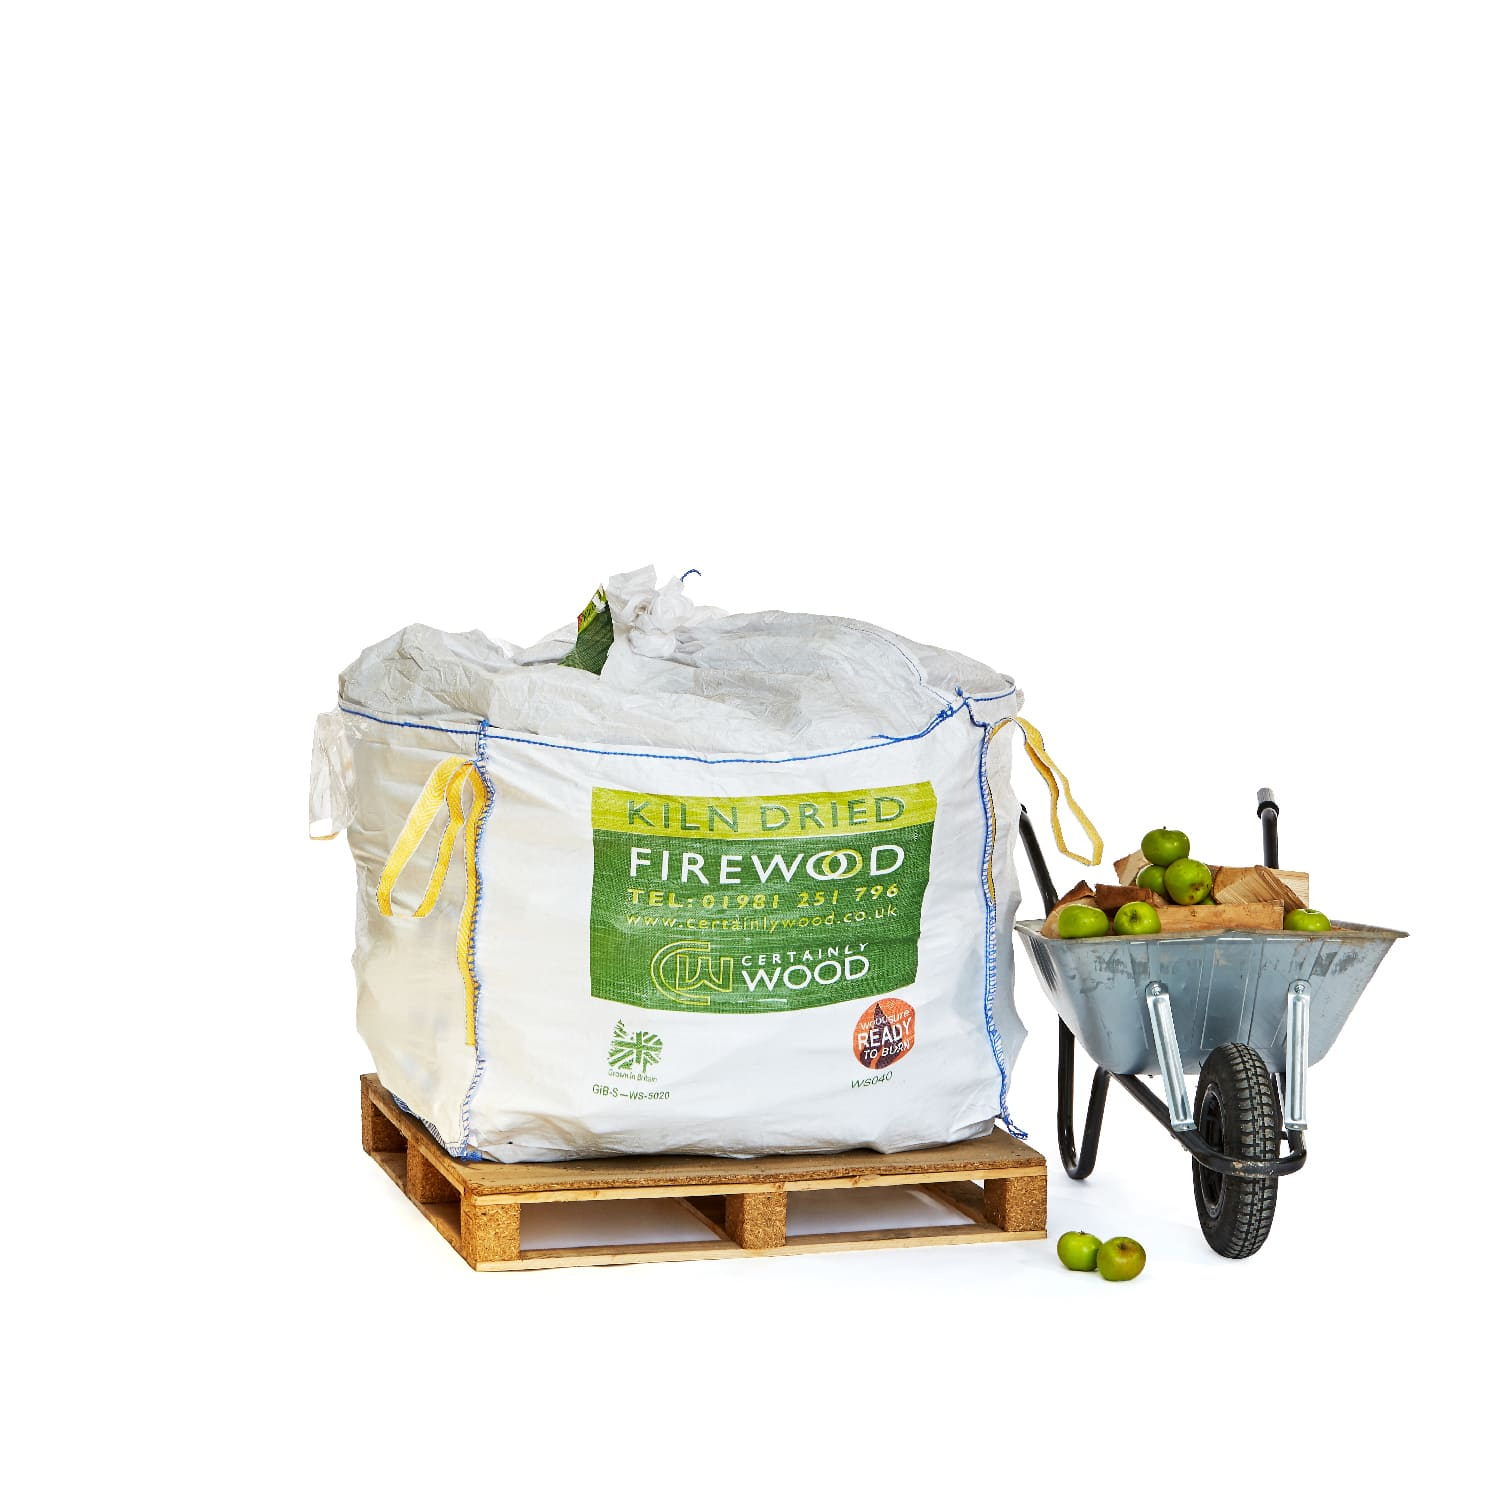 A 0.8m3 Bulk bag of kiln dried apple wood